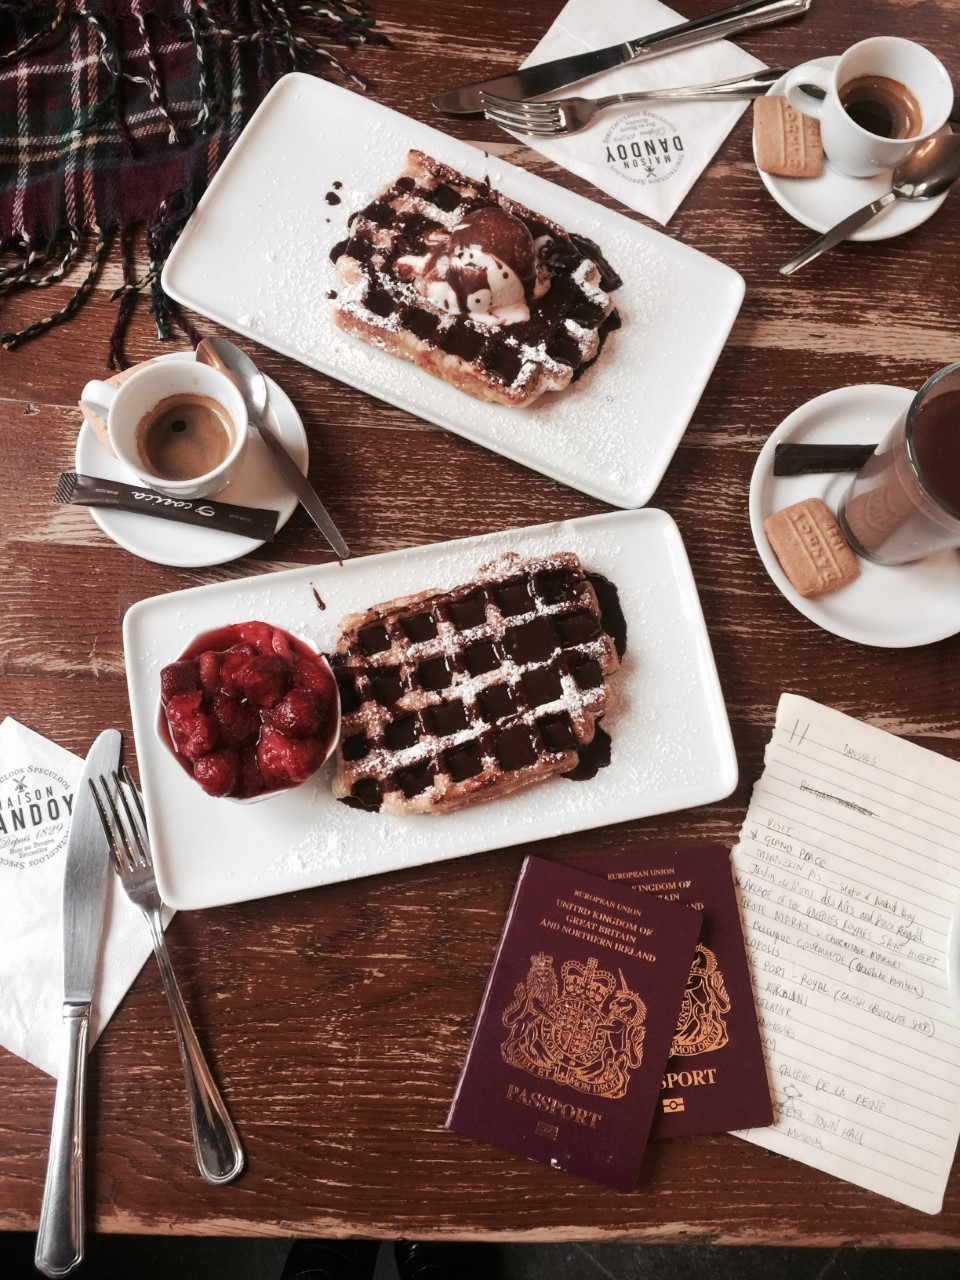 MAISON DANDOY - No better start to the Trip than with Belgium waffles for breakfast! Best waffles in town!